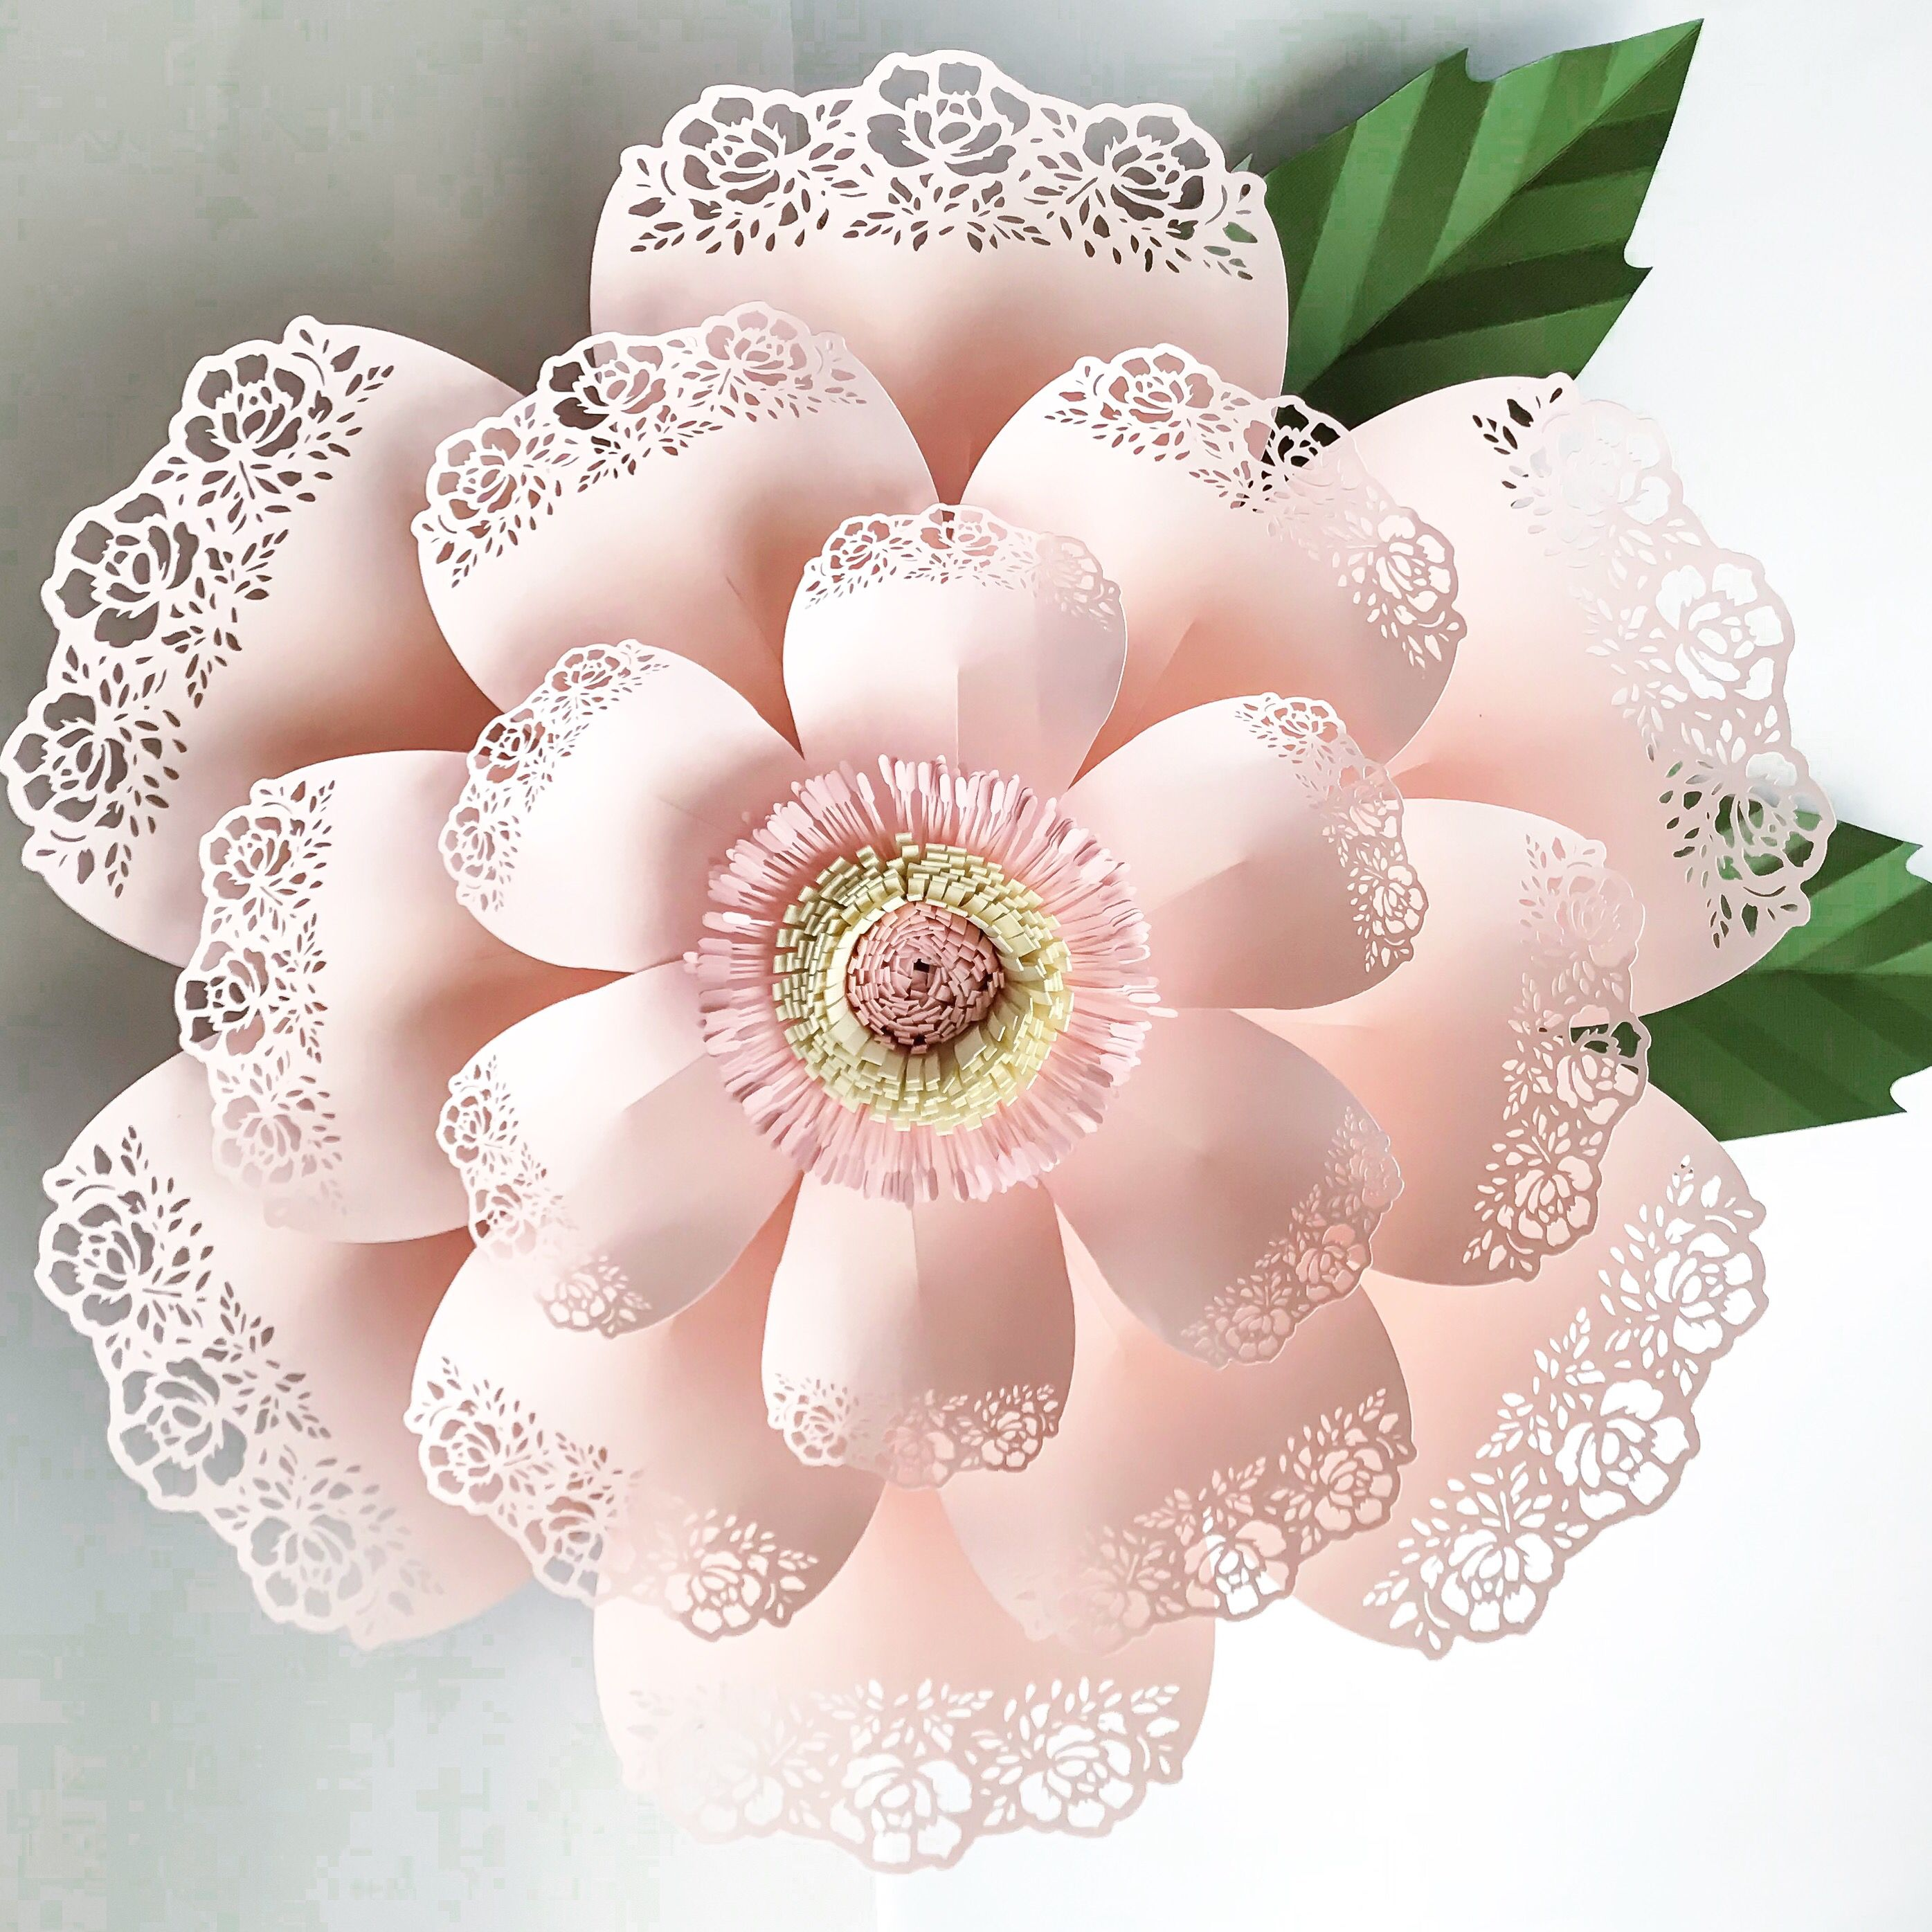 Lace Petal 5 Paper Flower Template Its Available In The Crafty